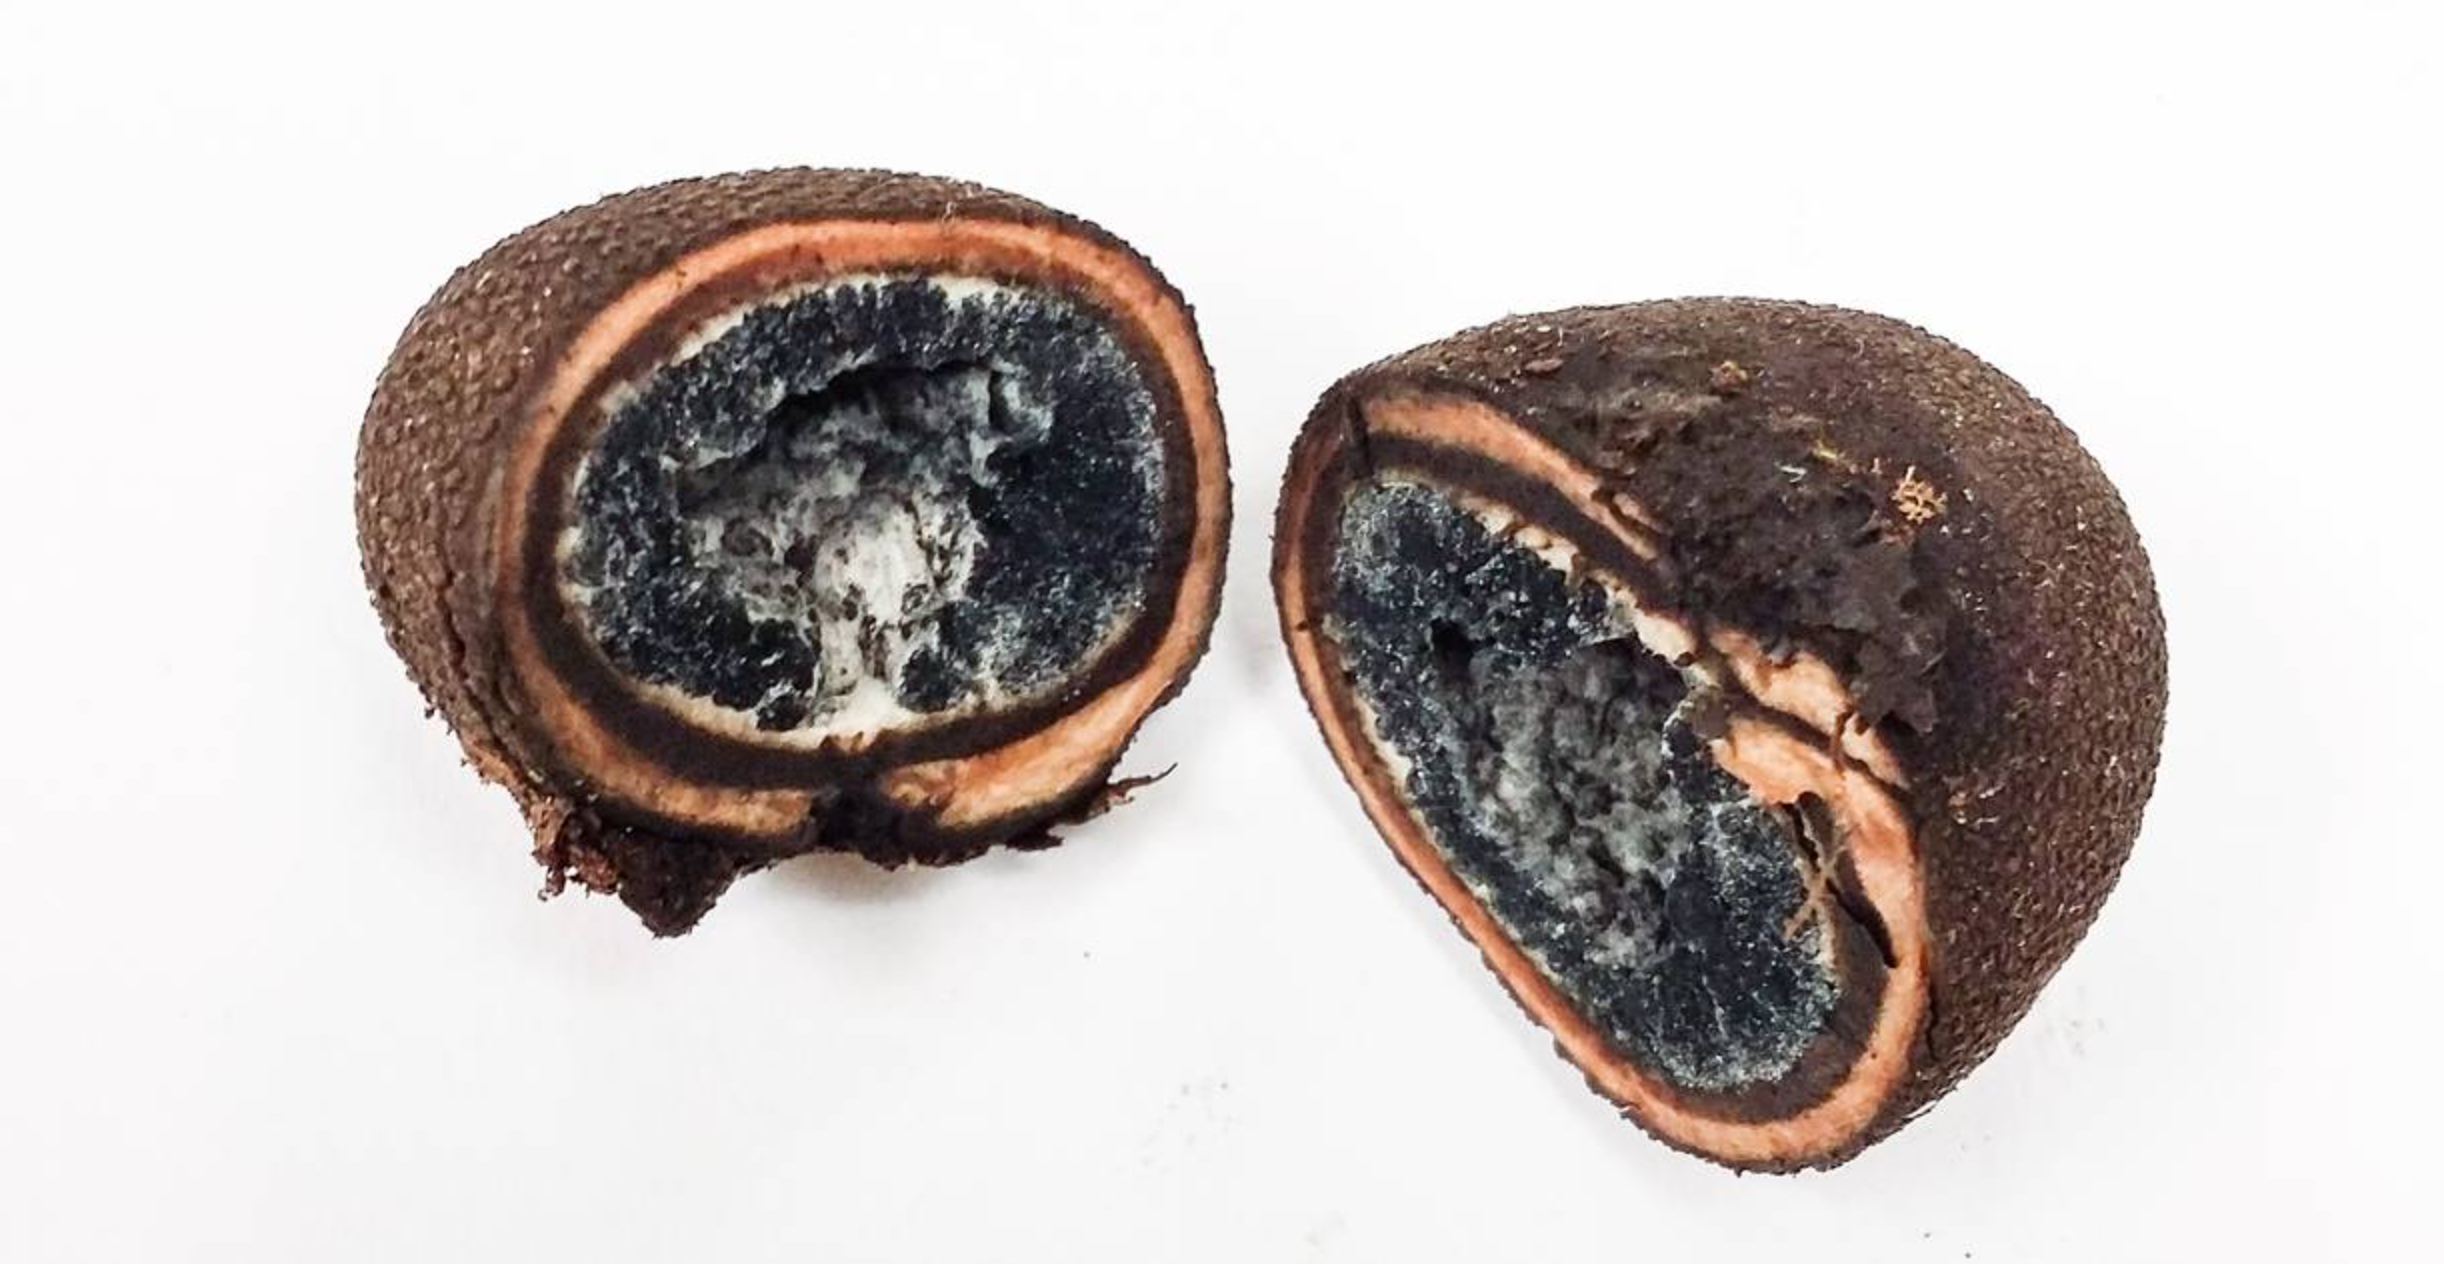 A mature specimen of the false truffle, Elaphomyces muricatus.  Younger specimens have a central spore mass that is whiter, turning black and powdery with age. By  Danny Newman .